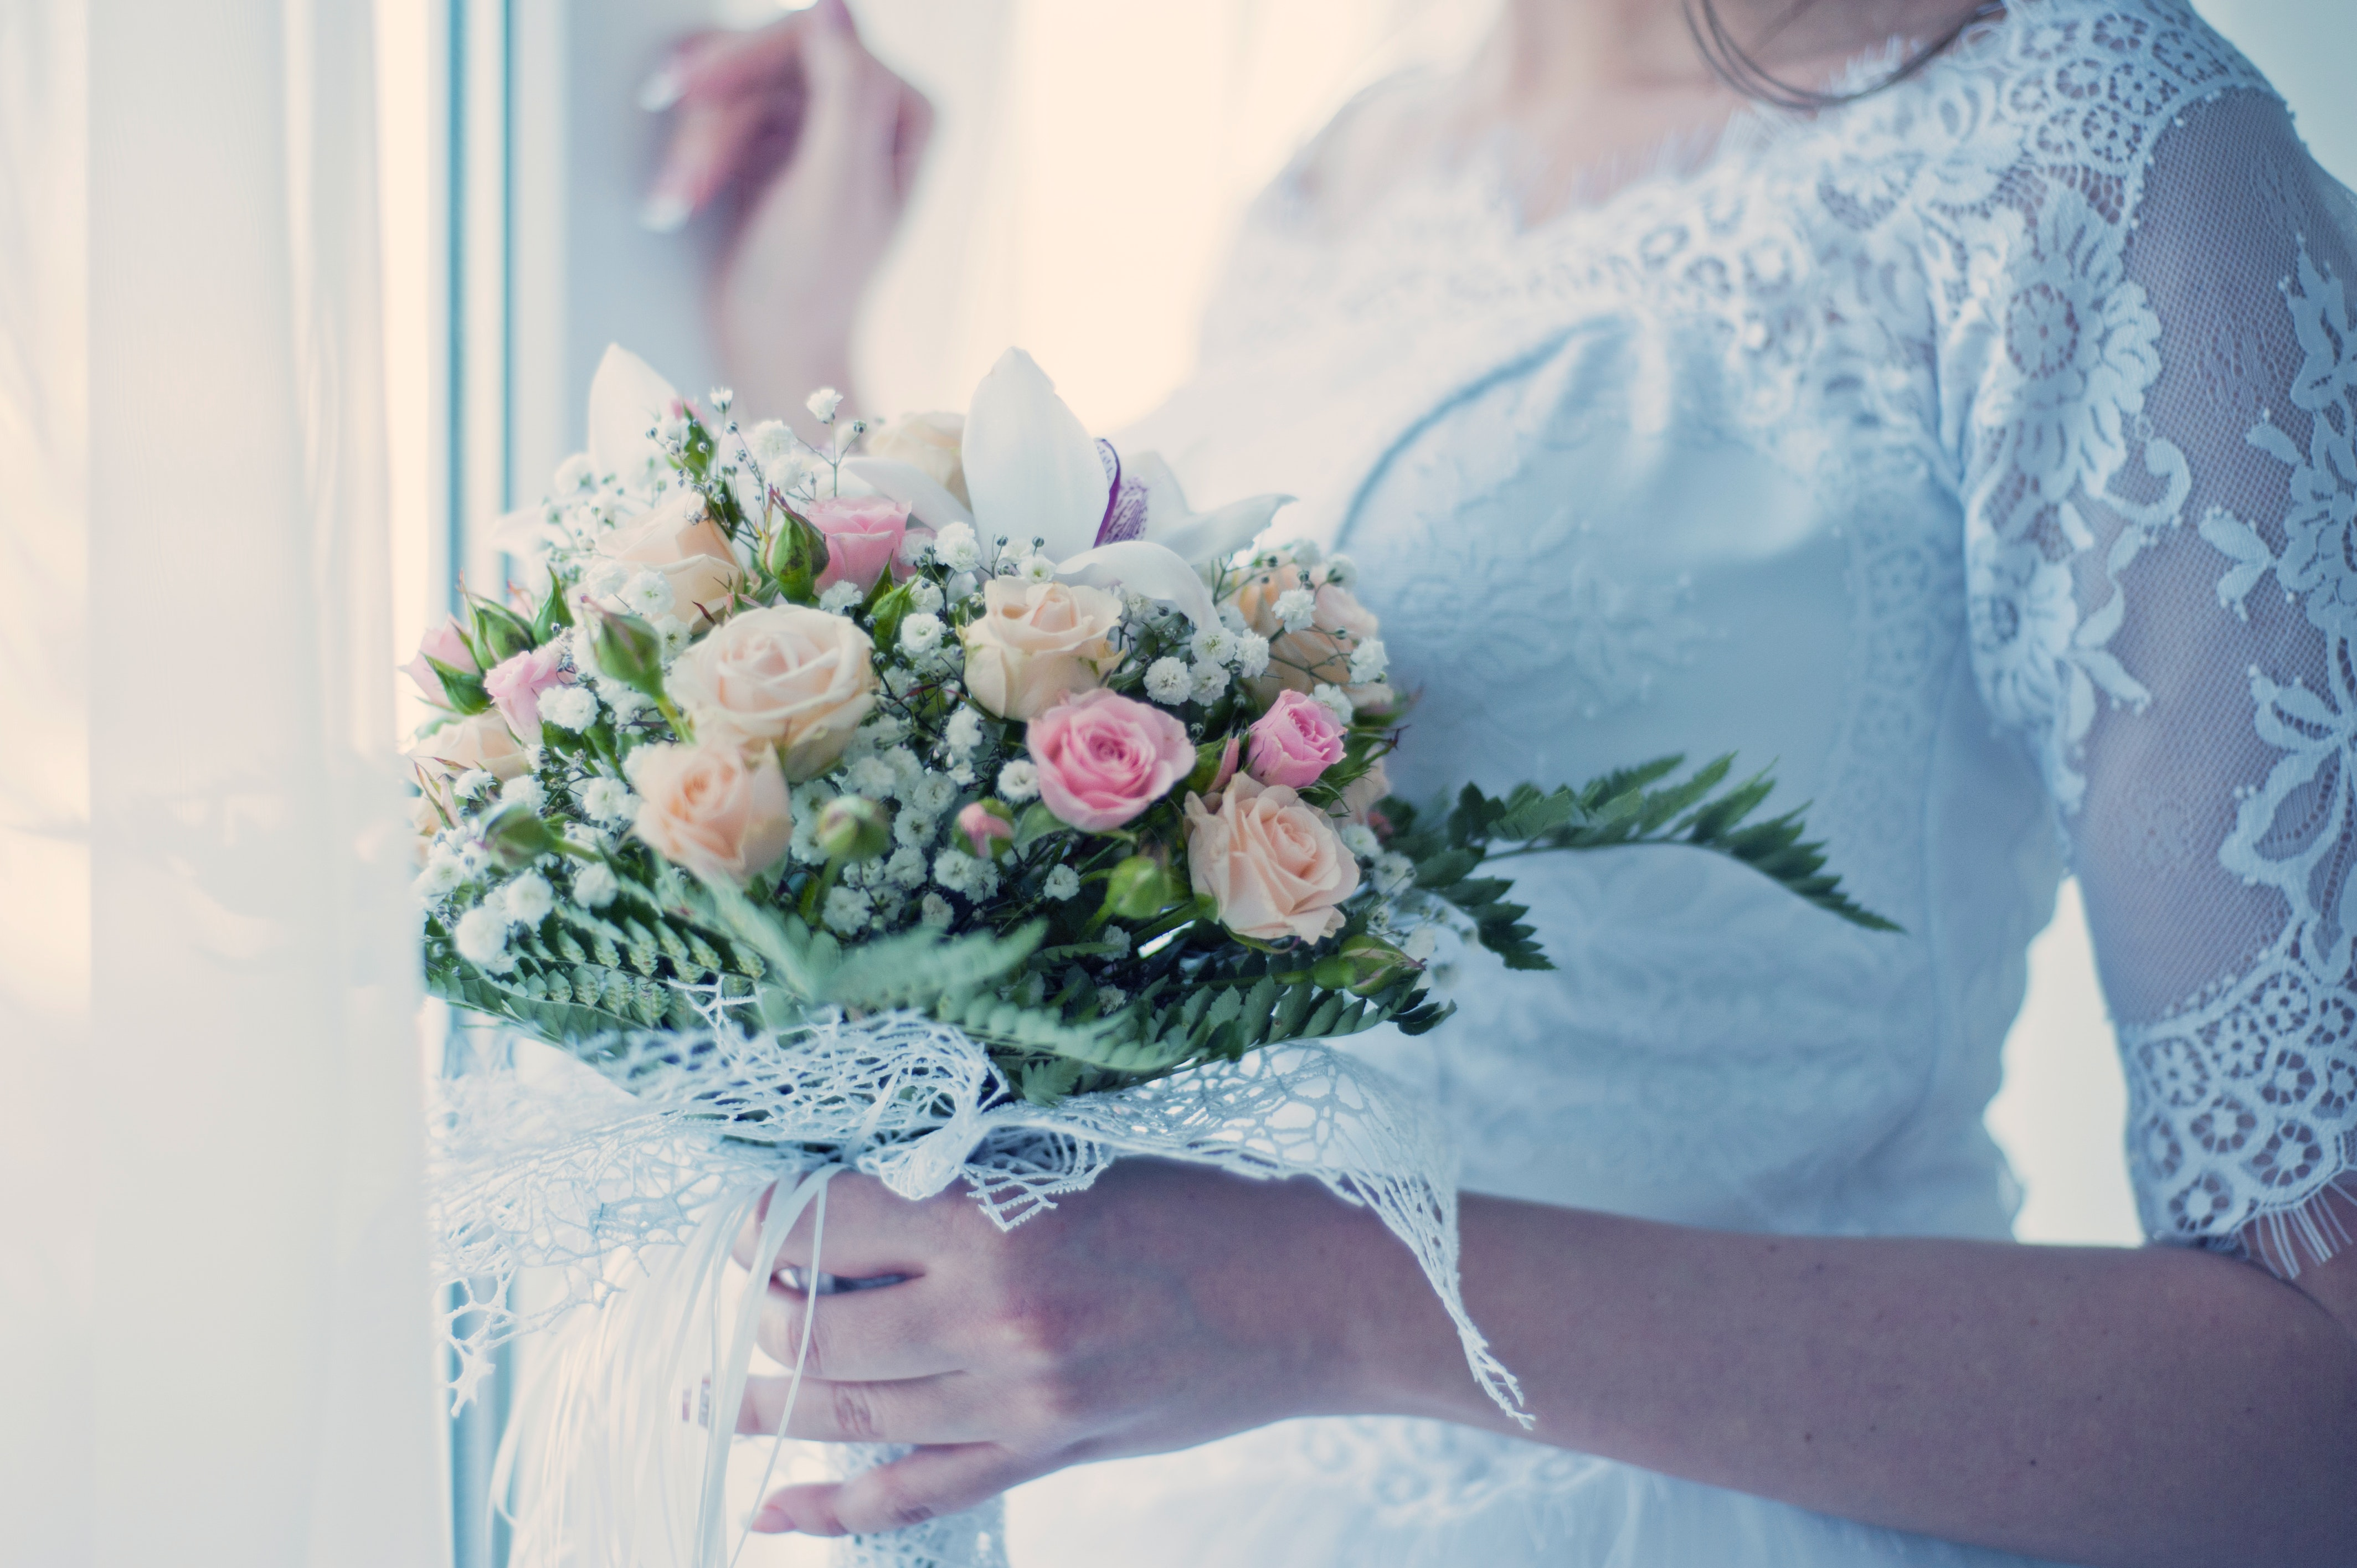 Woman in White Wedding Dress Holding a Bouquet of Flowers ...